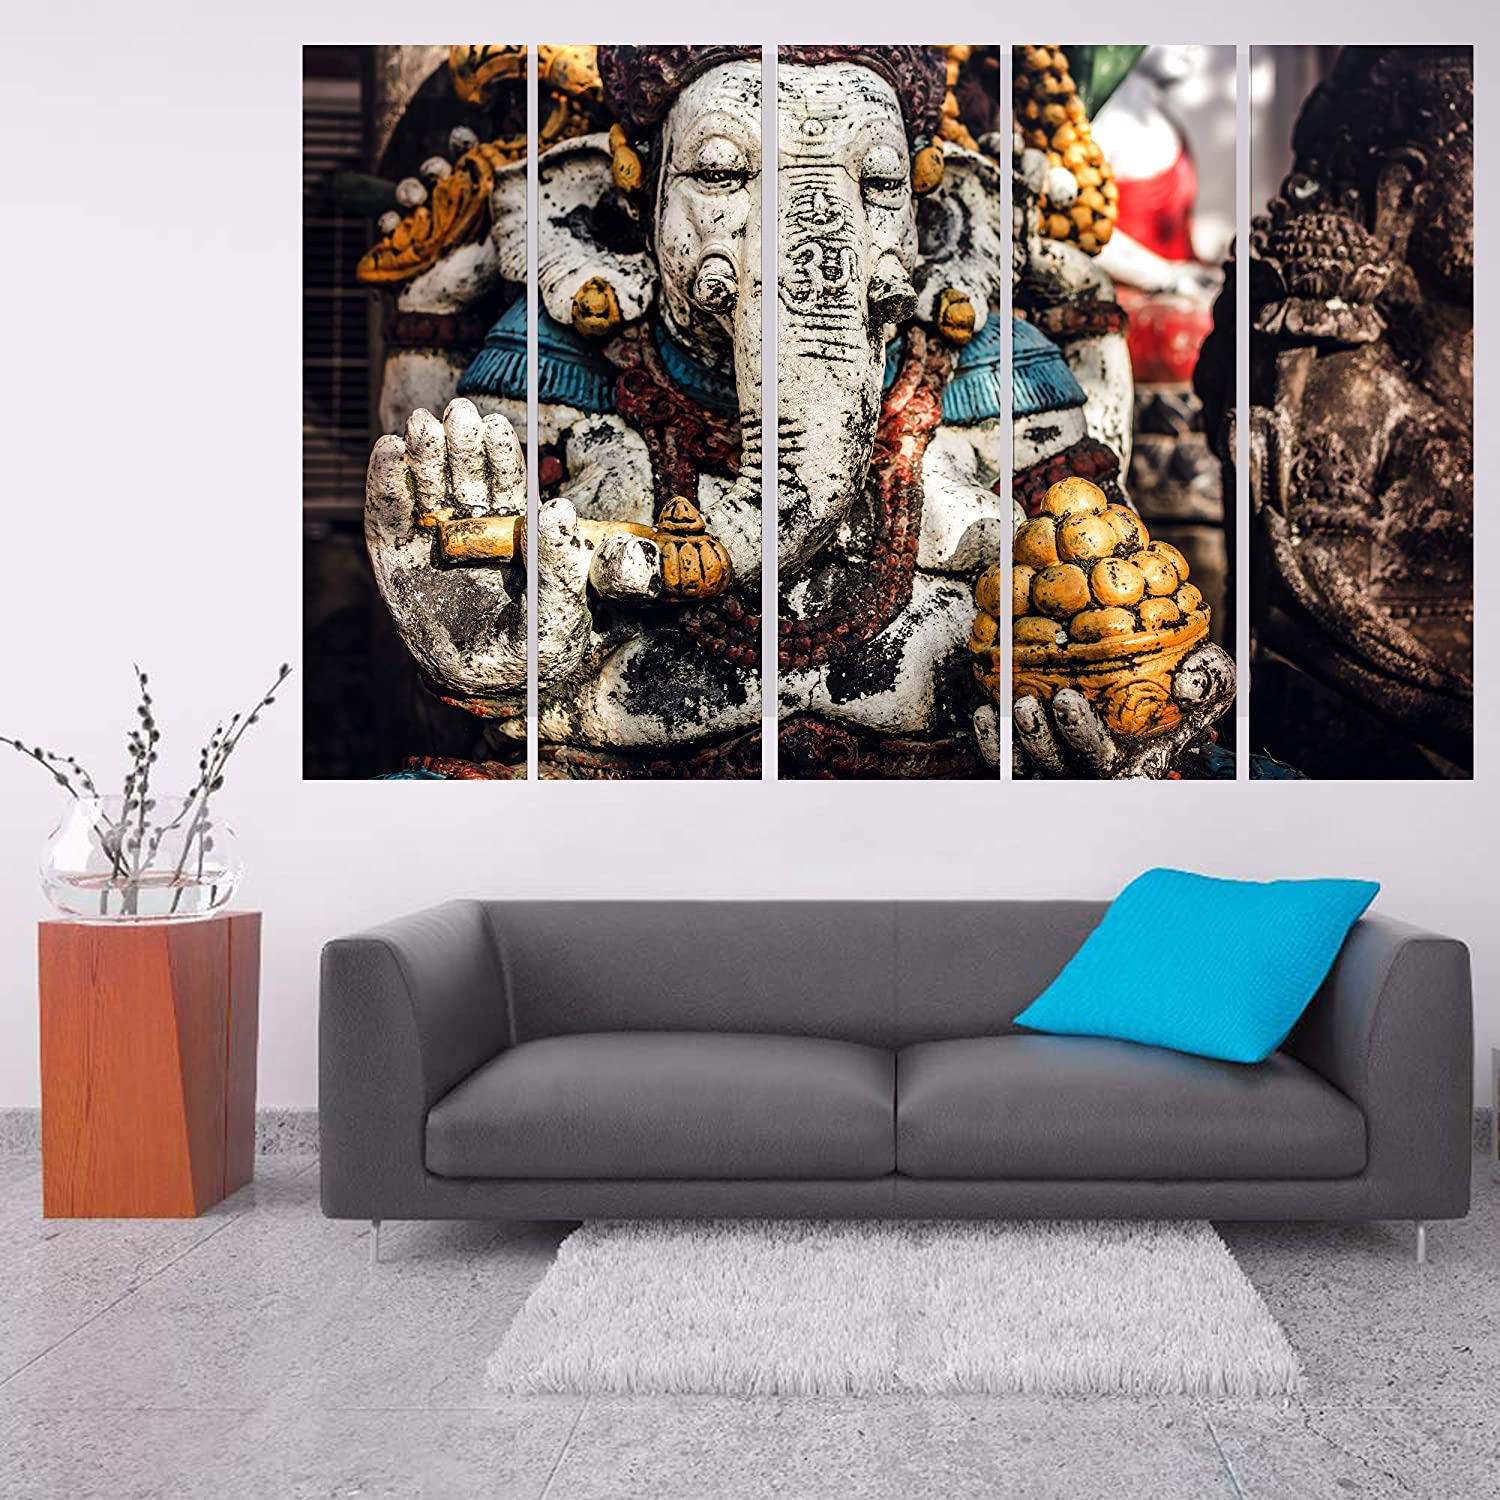 Kyara Arts Multiple Frames Beautiful Modern Art Ganesha Wall Painting For Living Room Bedroom Office Hotels Drawing Room Wooden Framed Digital Painting 50inch X 30inch Amazon In Home Kitchen